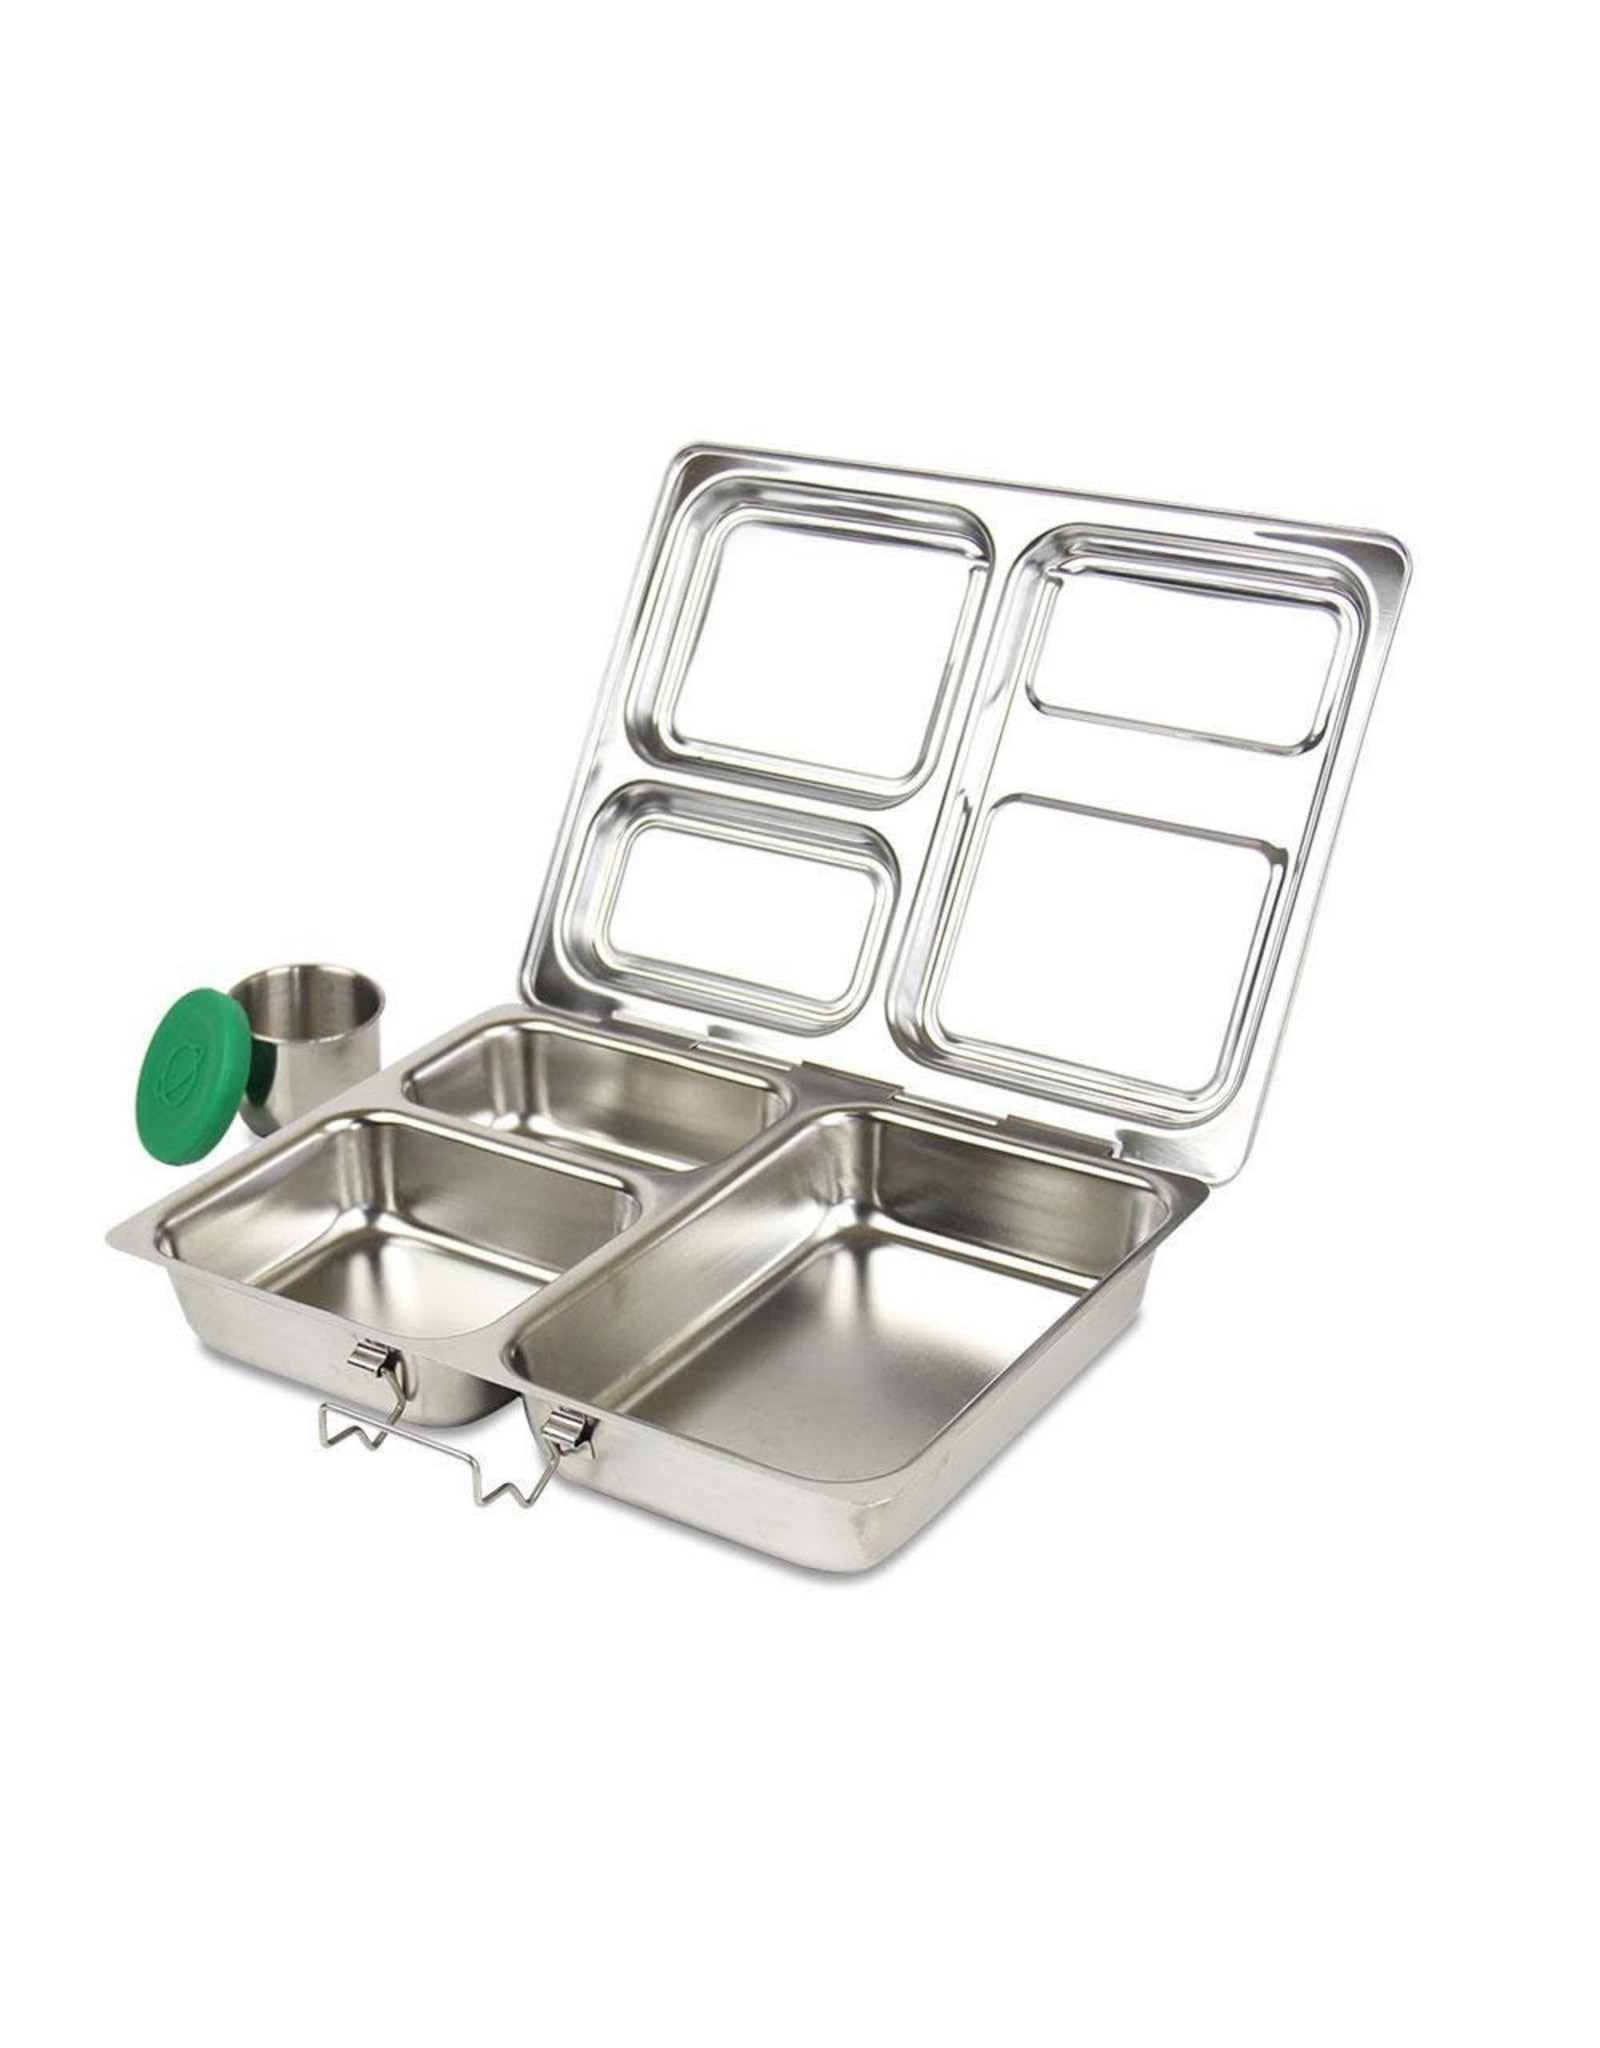 PlanetBox PlanetBox Launch, Stainless Steel Lunch Box